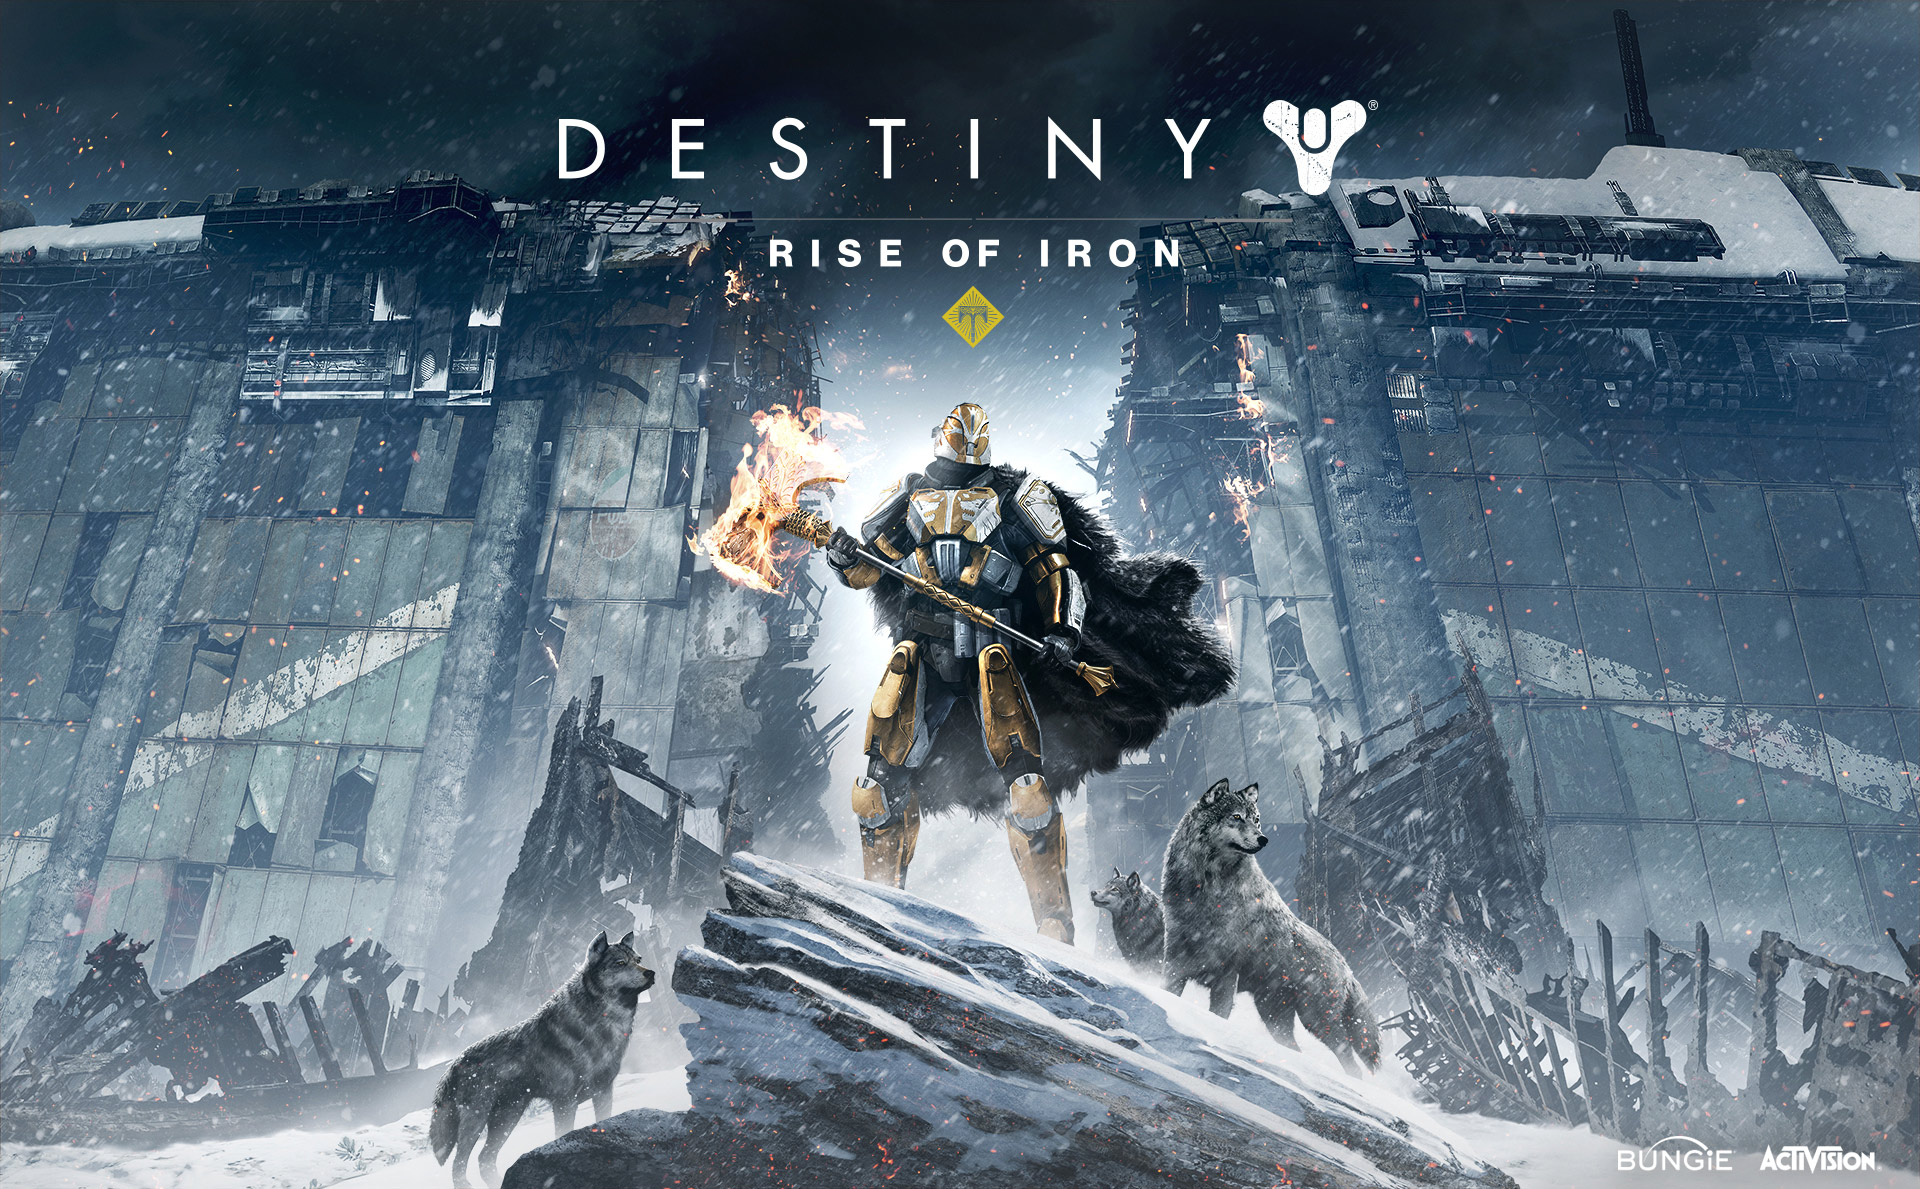 'Destiny: Rise of Iron'